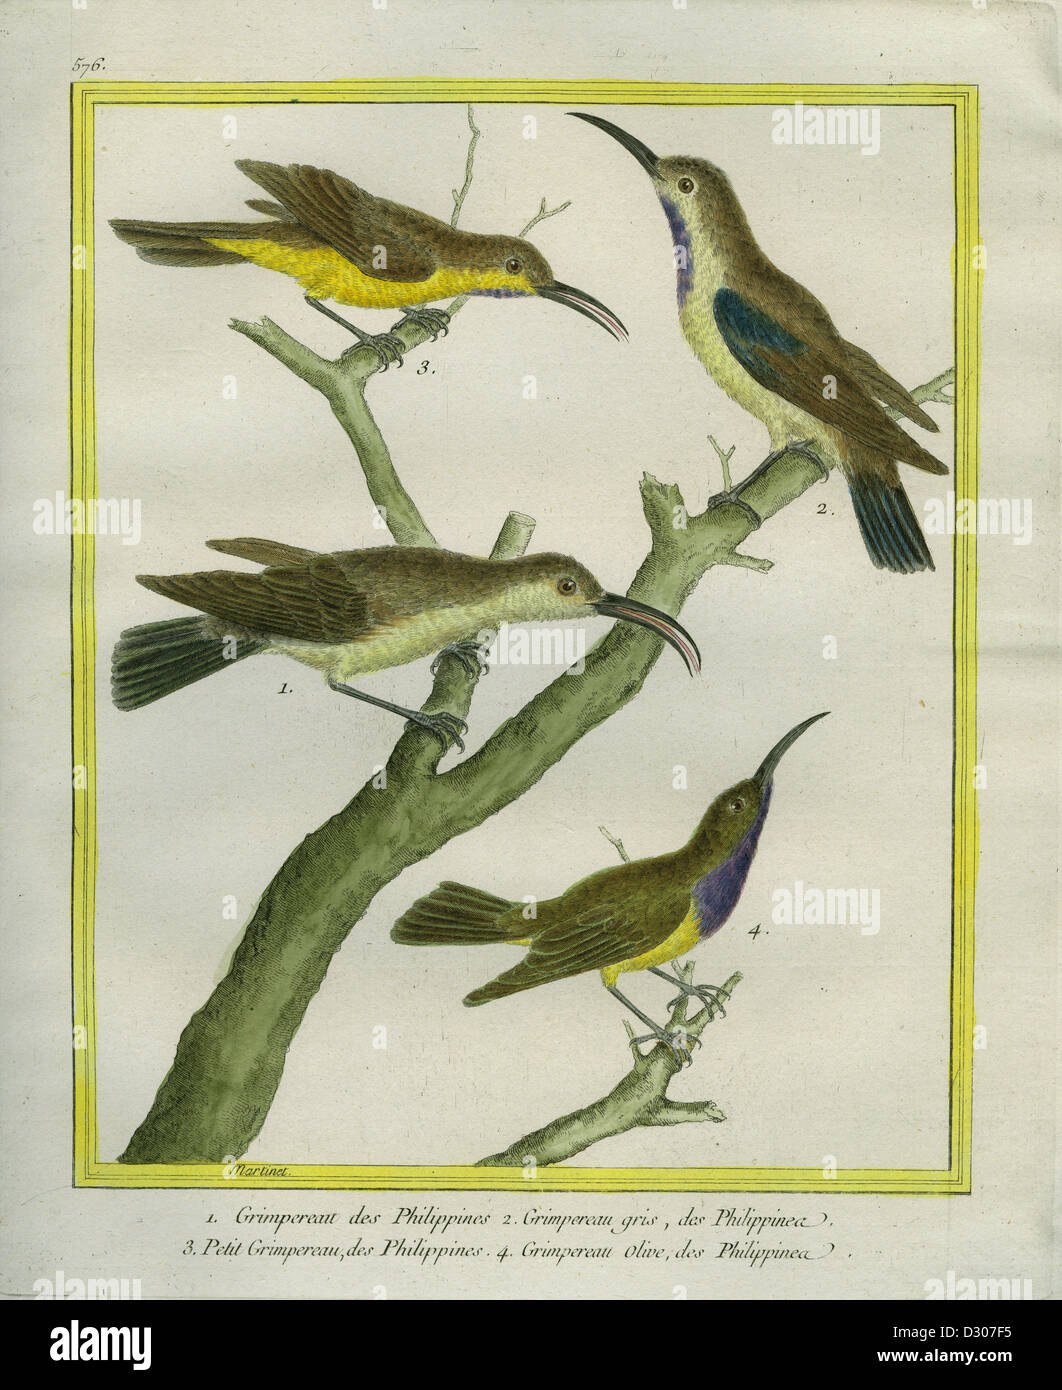 Tree creeper, Brown Treecreeper 'Natural History of birds, fish, insects, and reptiles' colored and engraved - Stock Image